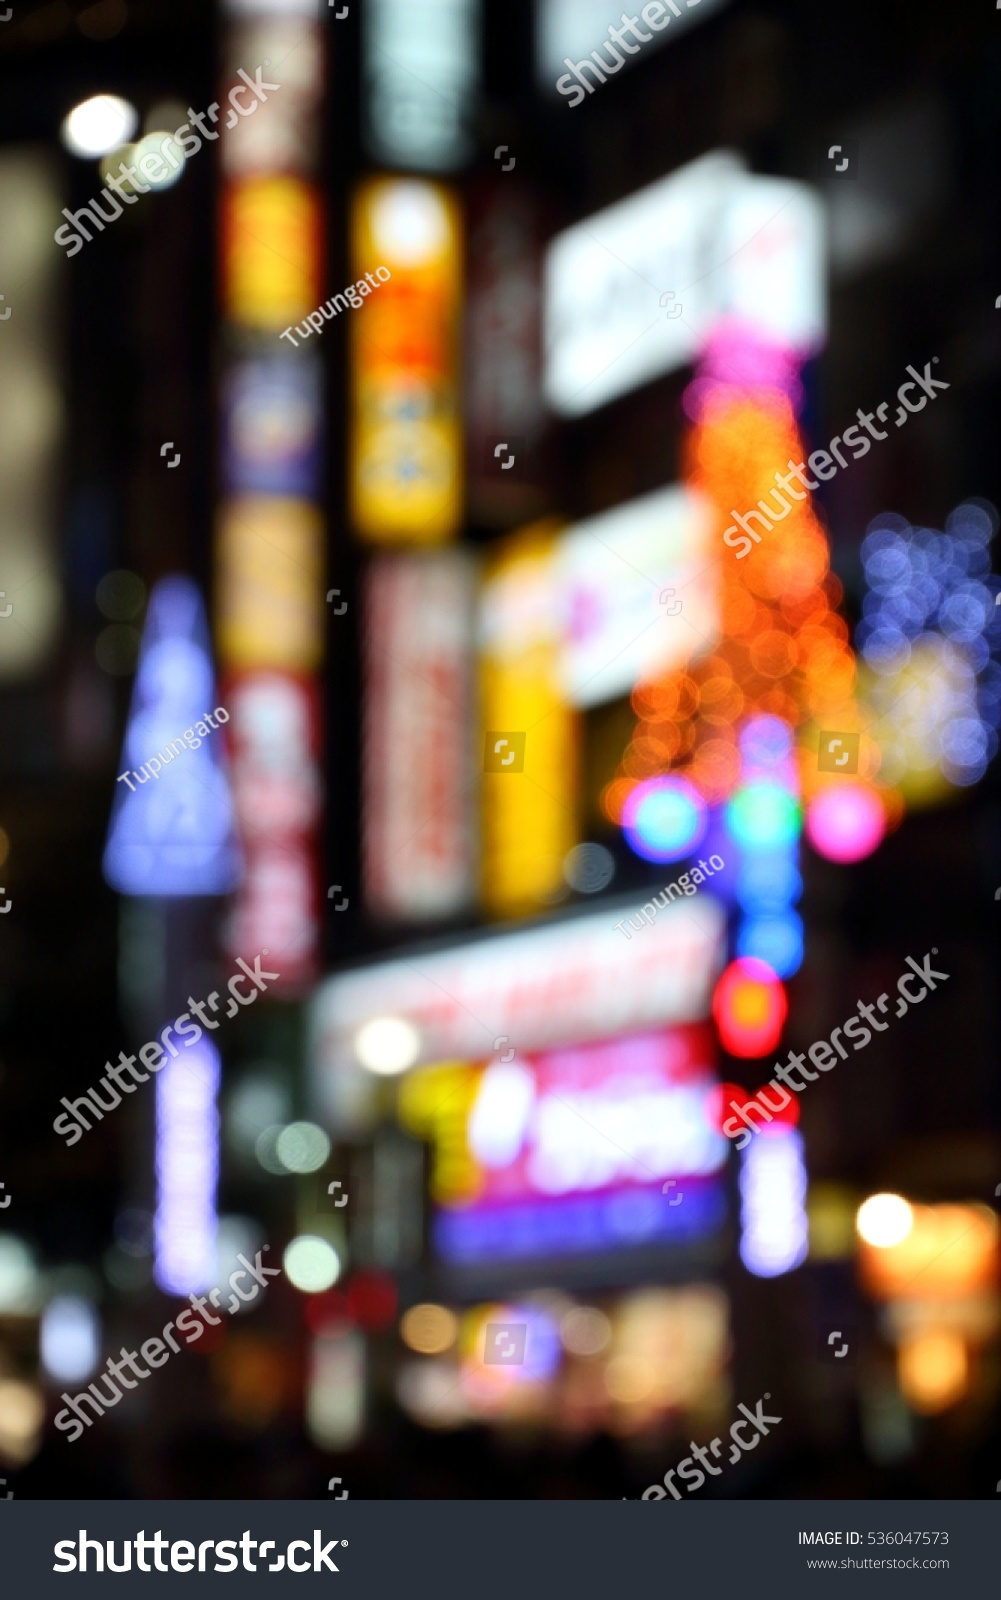 big city lights defocused tokyo japan stock photo 536047573 shutterstock. Black Bedroom Furniture Sets. Home Design Ideas